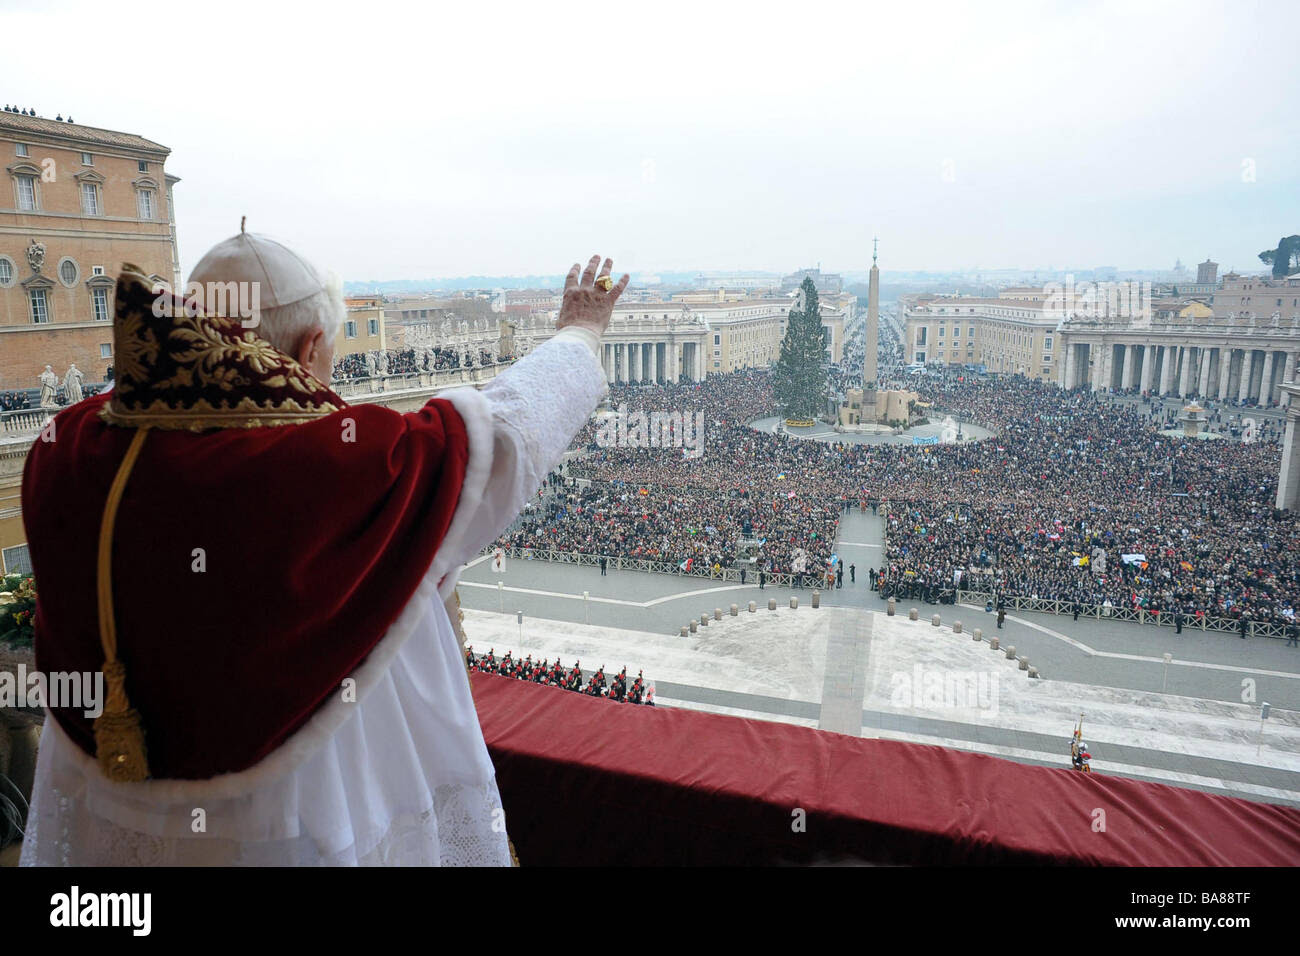 "Italy, Milan : Christmas celebration, ""Urbi et Orbi"" blessing by Benedict XVI (2008/12/25) Stock Photo"